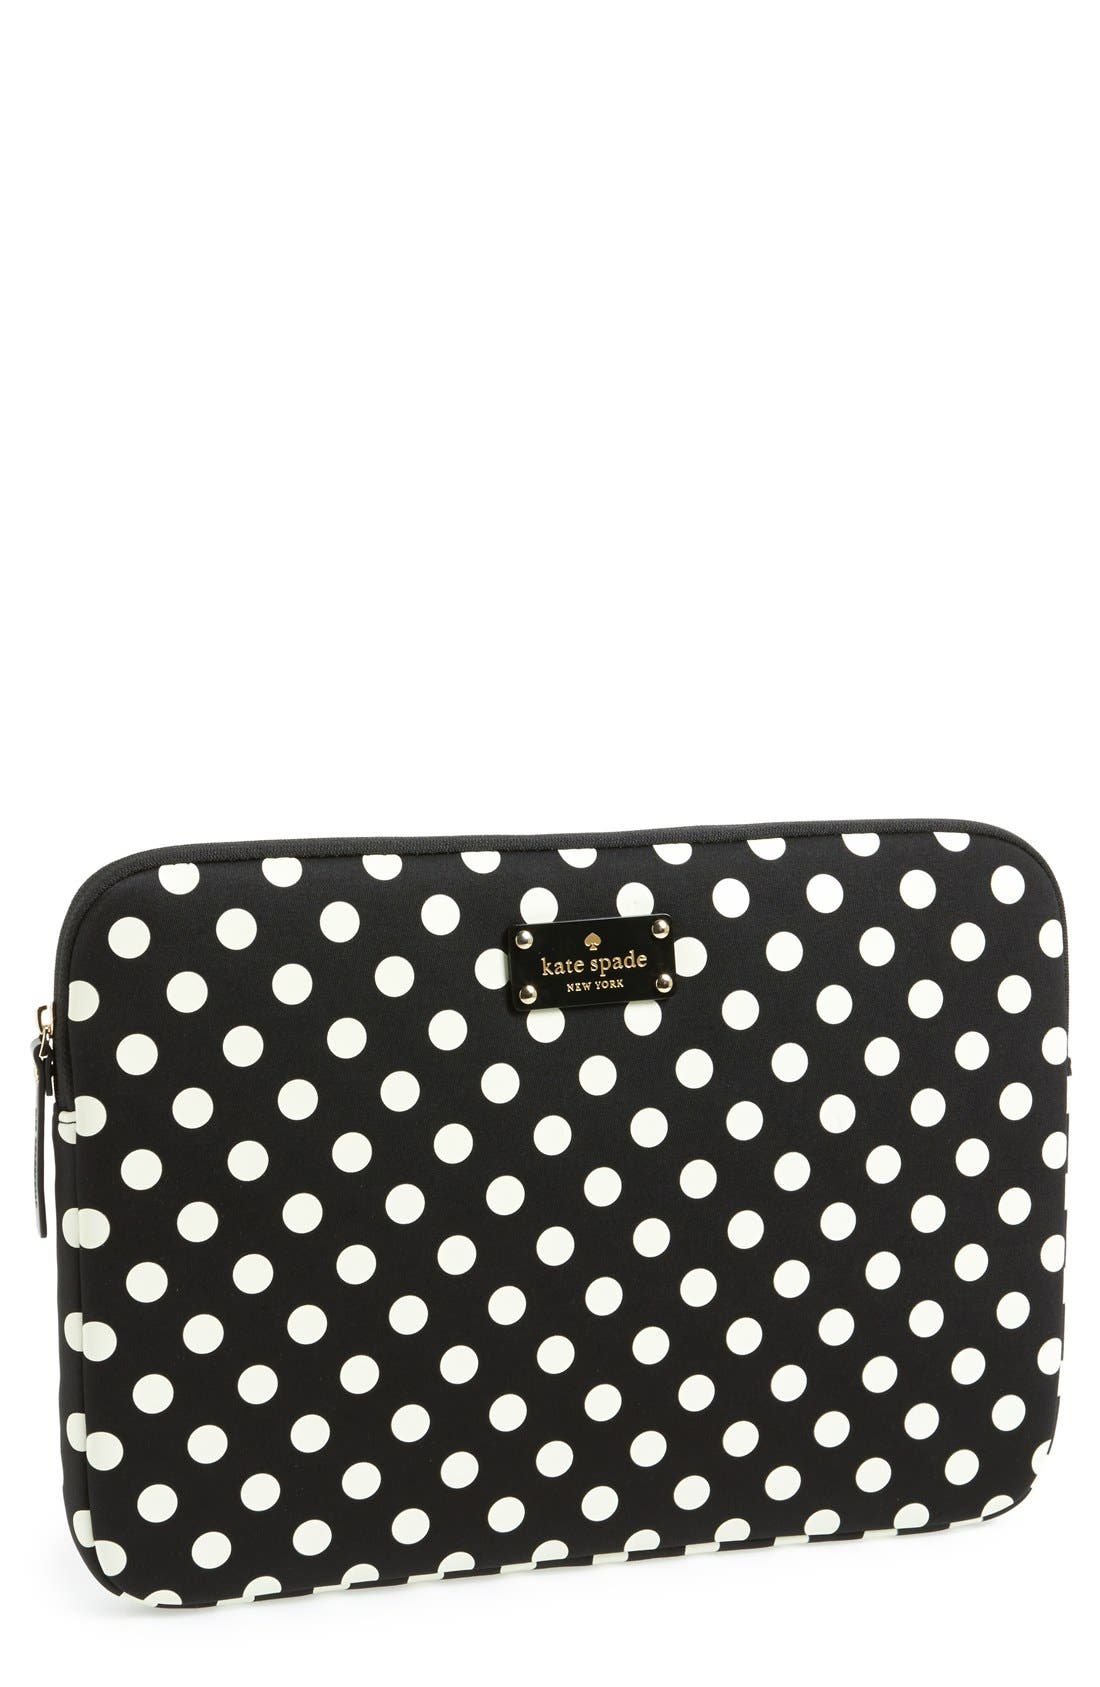 Main Image - kate spade new york 'la pavillion' laptop sleeve (13 Inch)